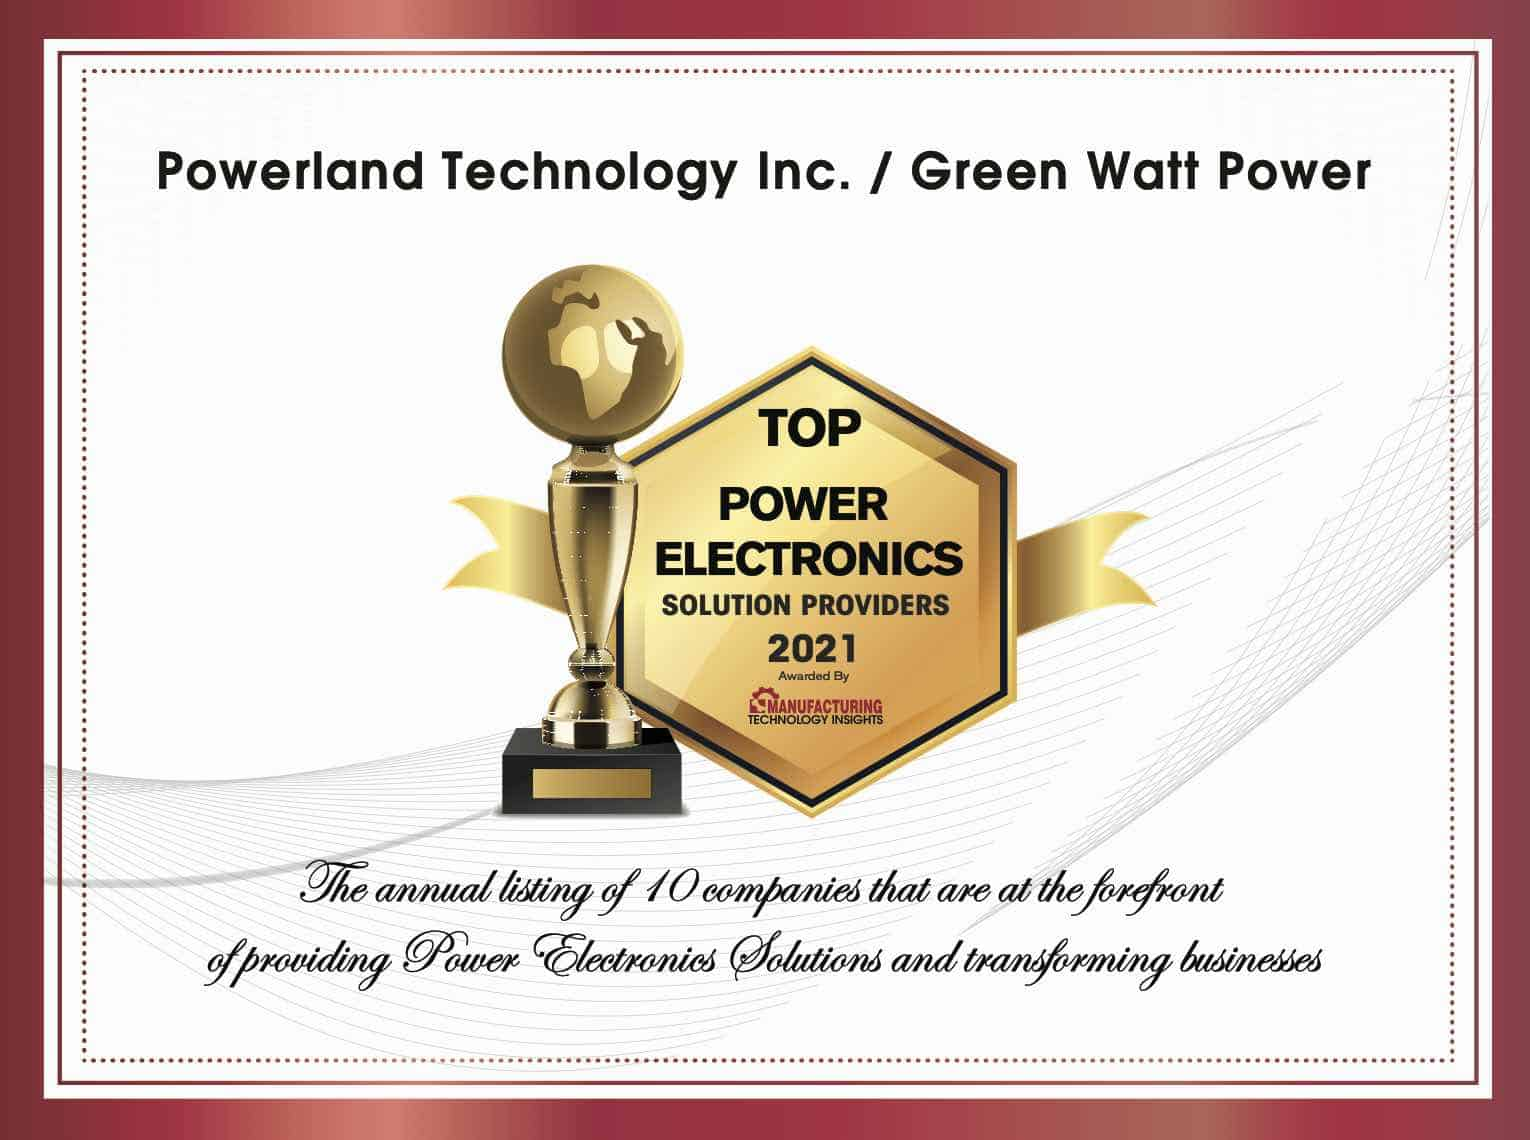 Powerland/Green Watt Power selected Top 10 Power Electronics Supplier